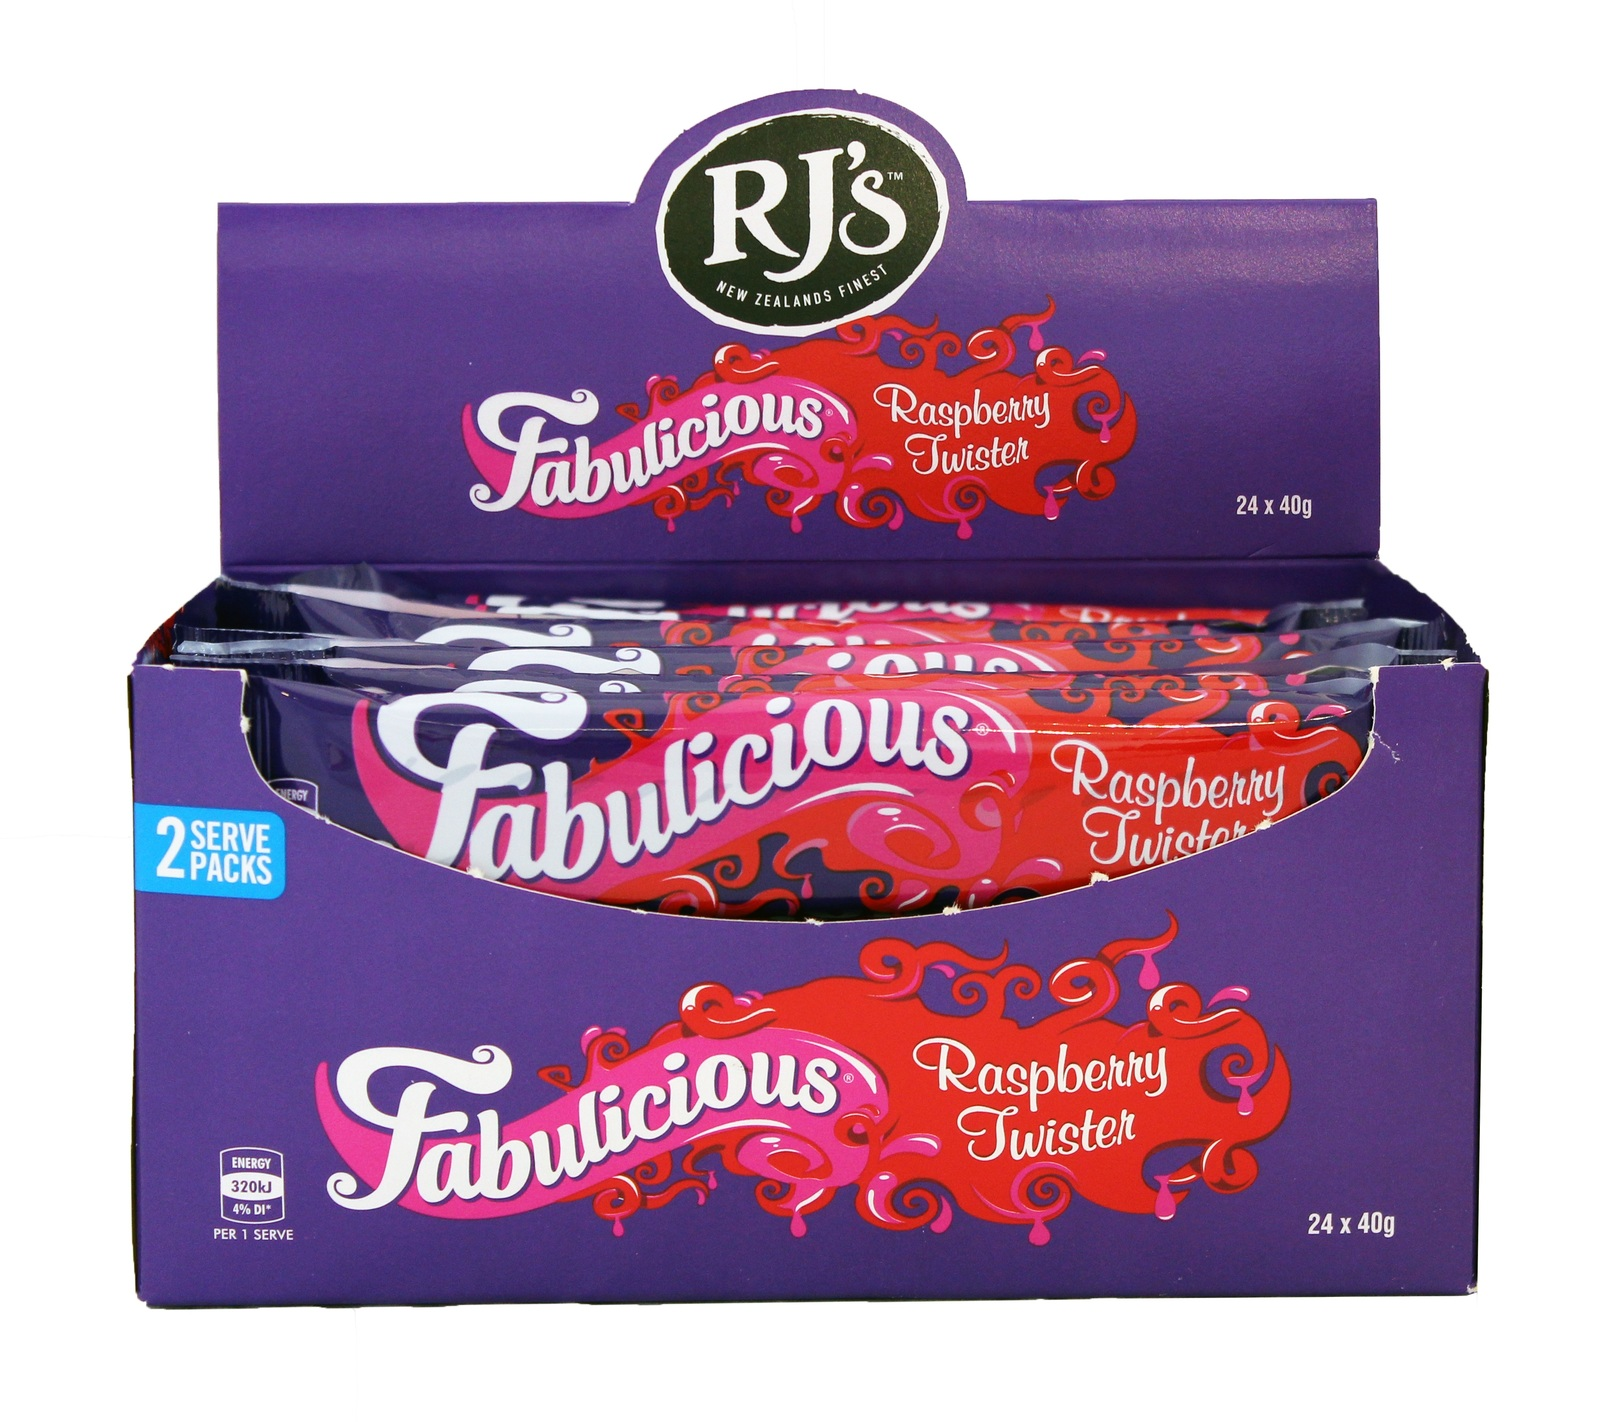 RJs Fabulicious Raspberry Twist 40g (24 Pack) image